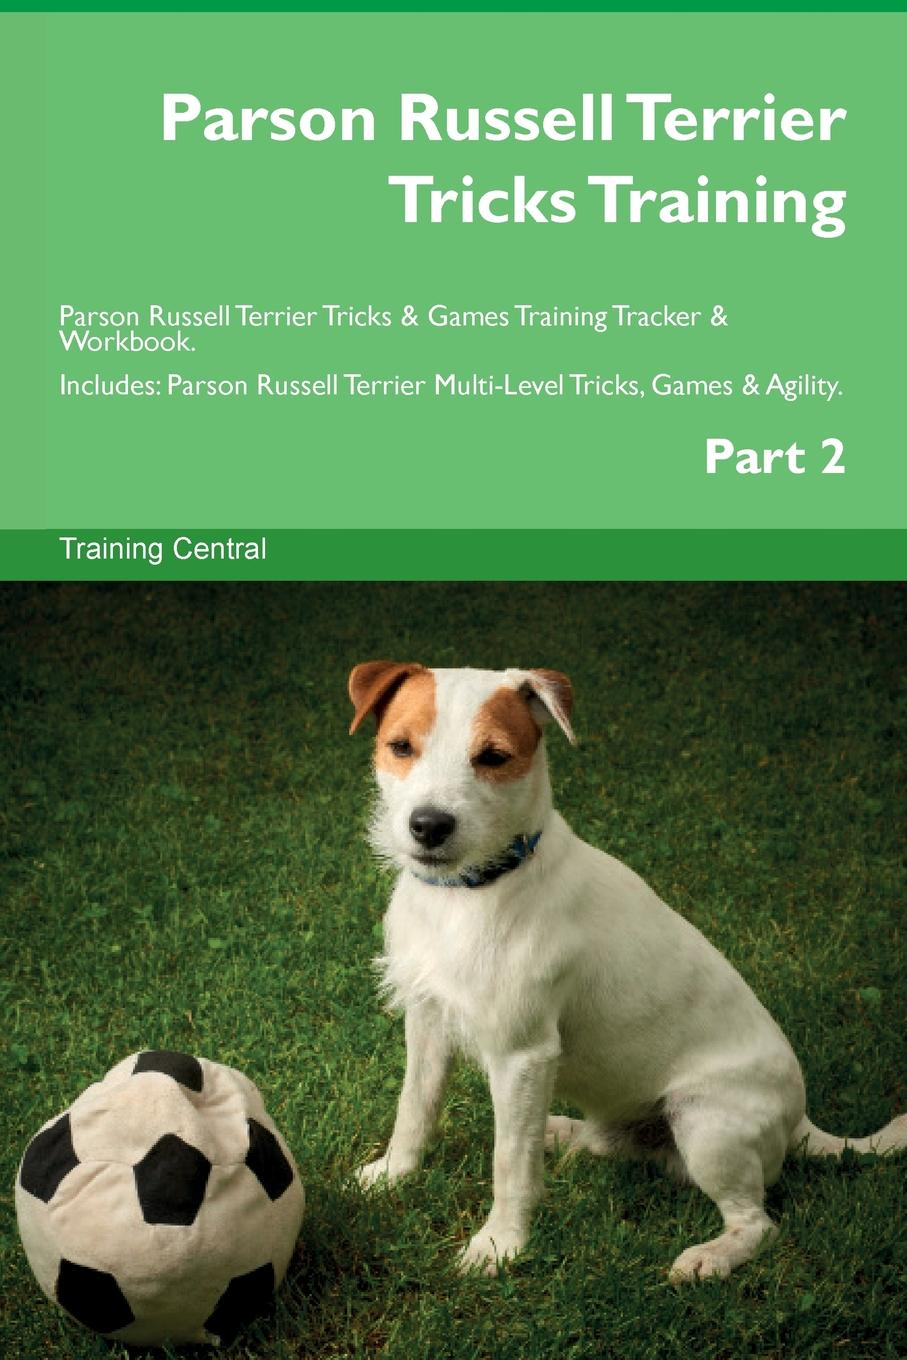 Training Central Parson Russell Terrier Tricks Training Parson Russell Terrier Tricks . Games Training Tracker . Workbook. Includes. Parson Russell Terrier Multi-Level Tricks, Games . Agility. Part 2 this book loves you